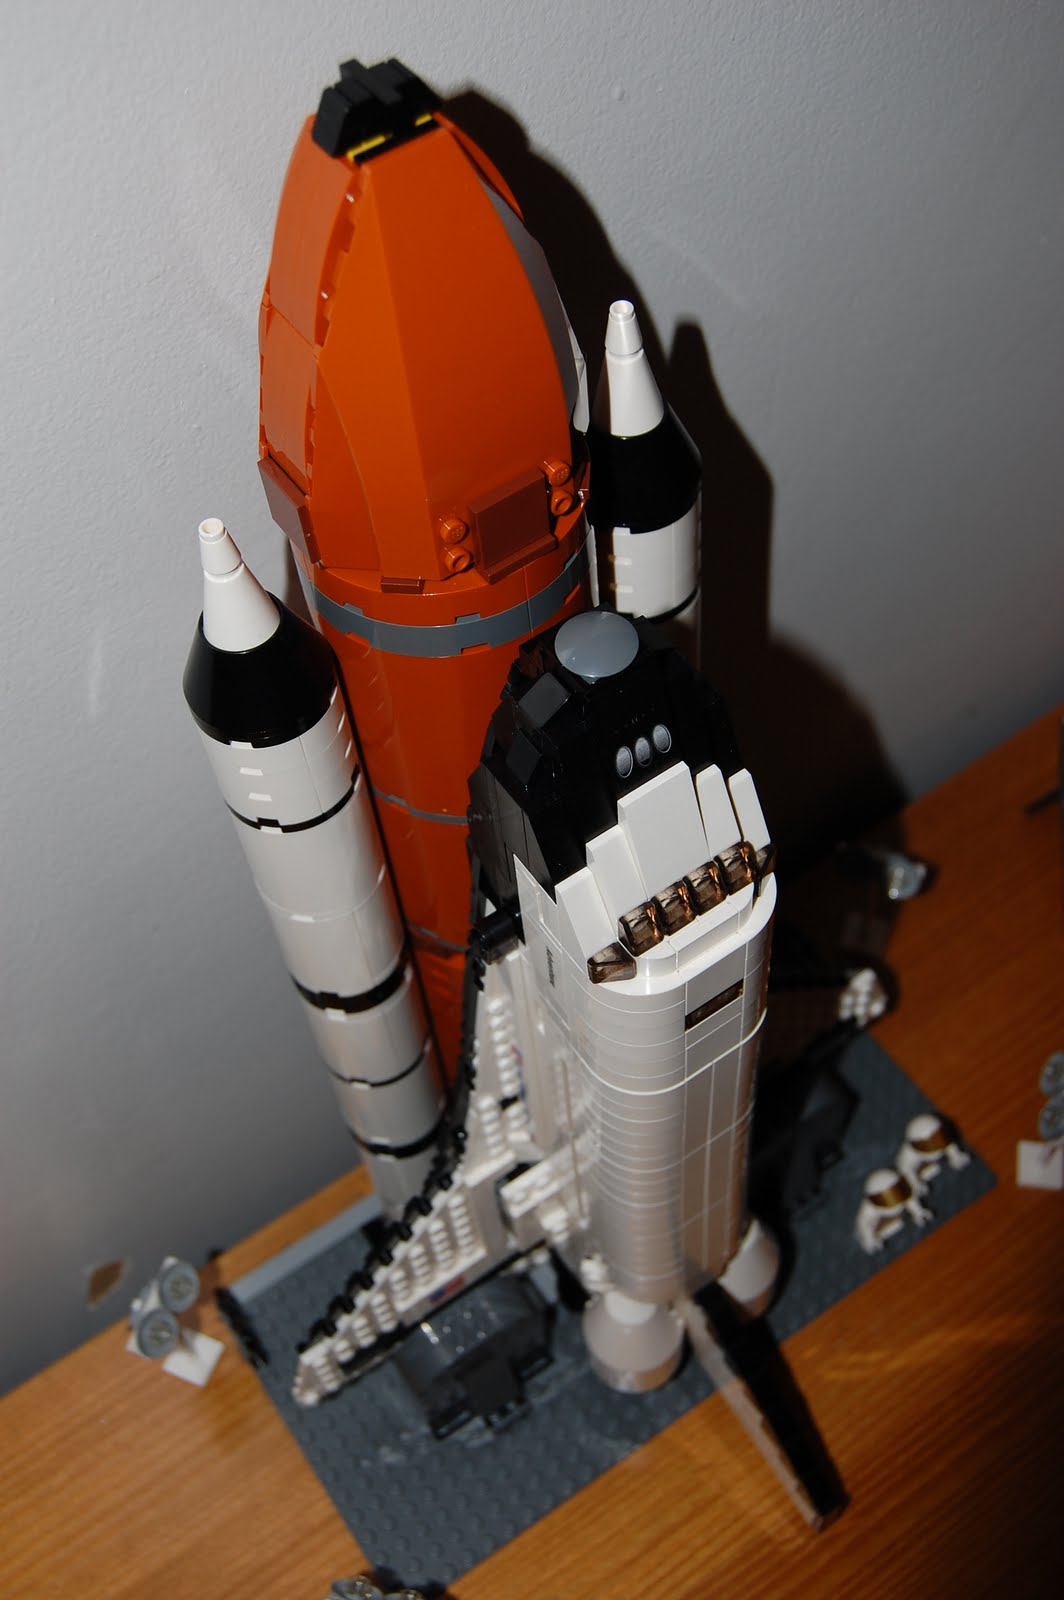 lego space shuttle a - photo #48